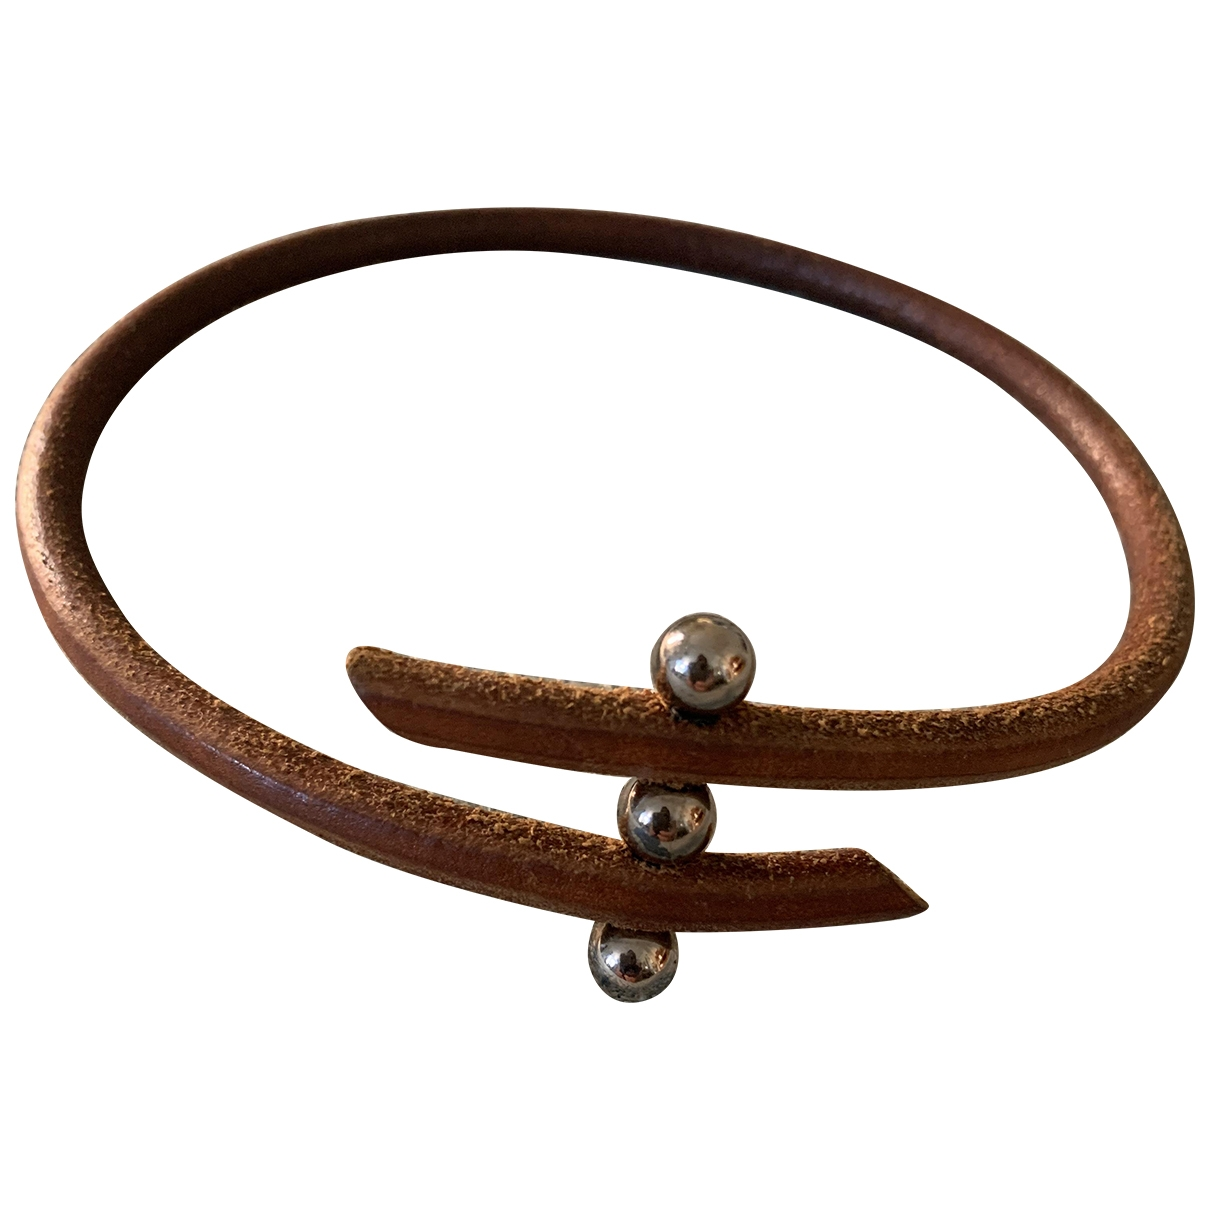 Hermès \N Brown Leather necklace for Women \N